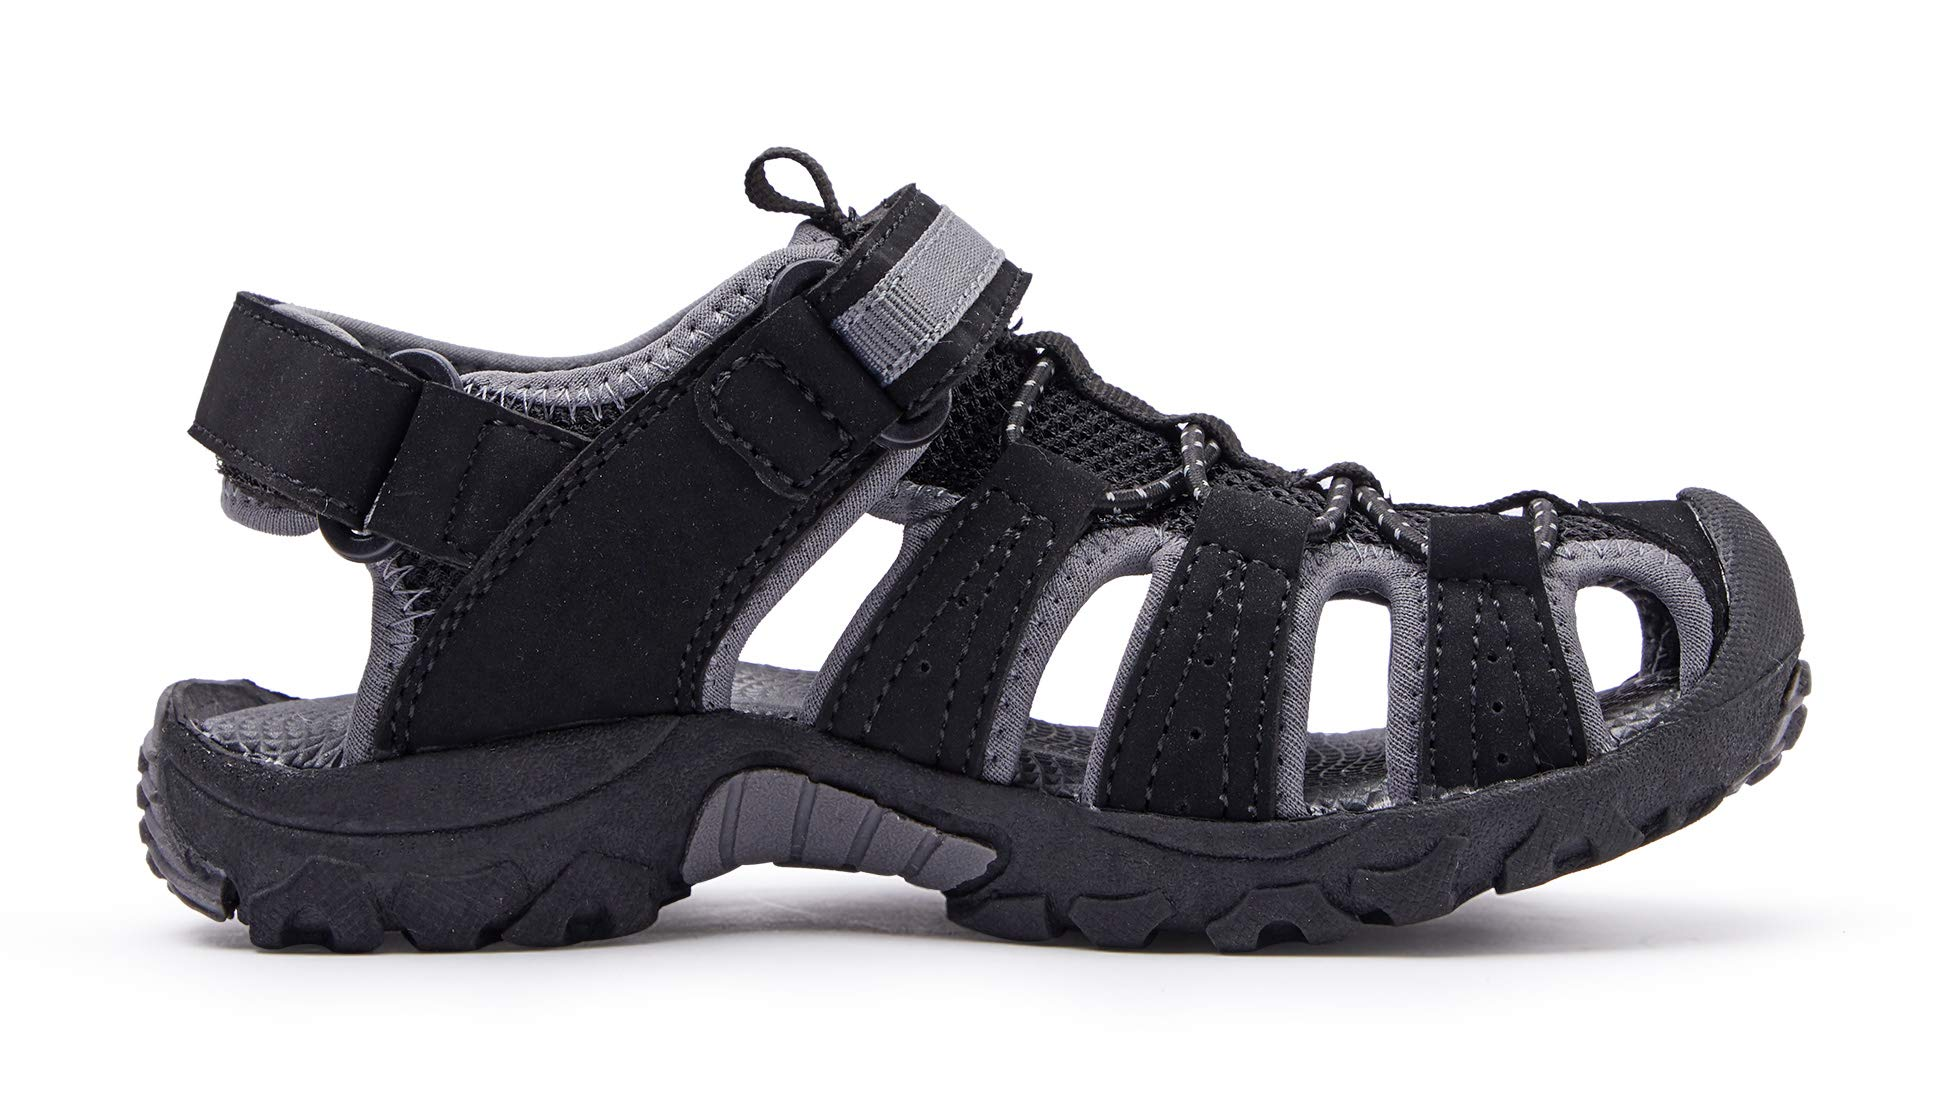 BMCiTYBM Girls Boys Hiking Sport Sandals Toddler Kid Closed Toe Water Shoes Black Size 3 by BMCiTYBM (Image #3)